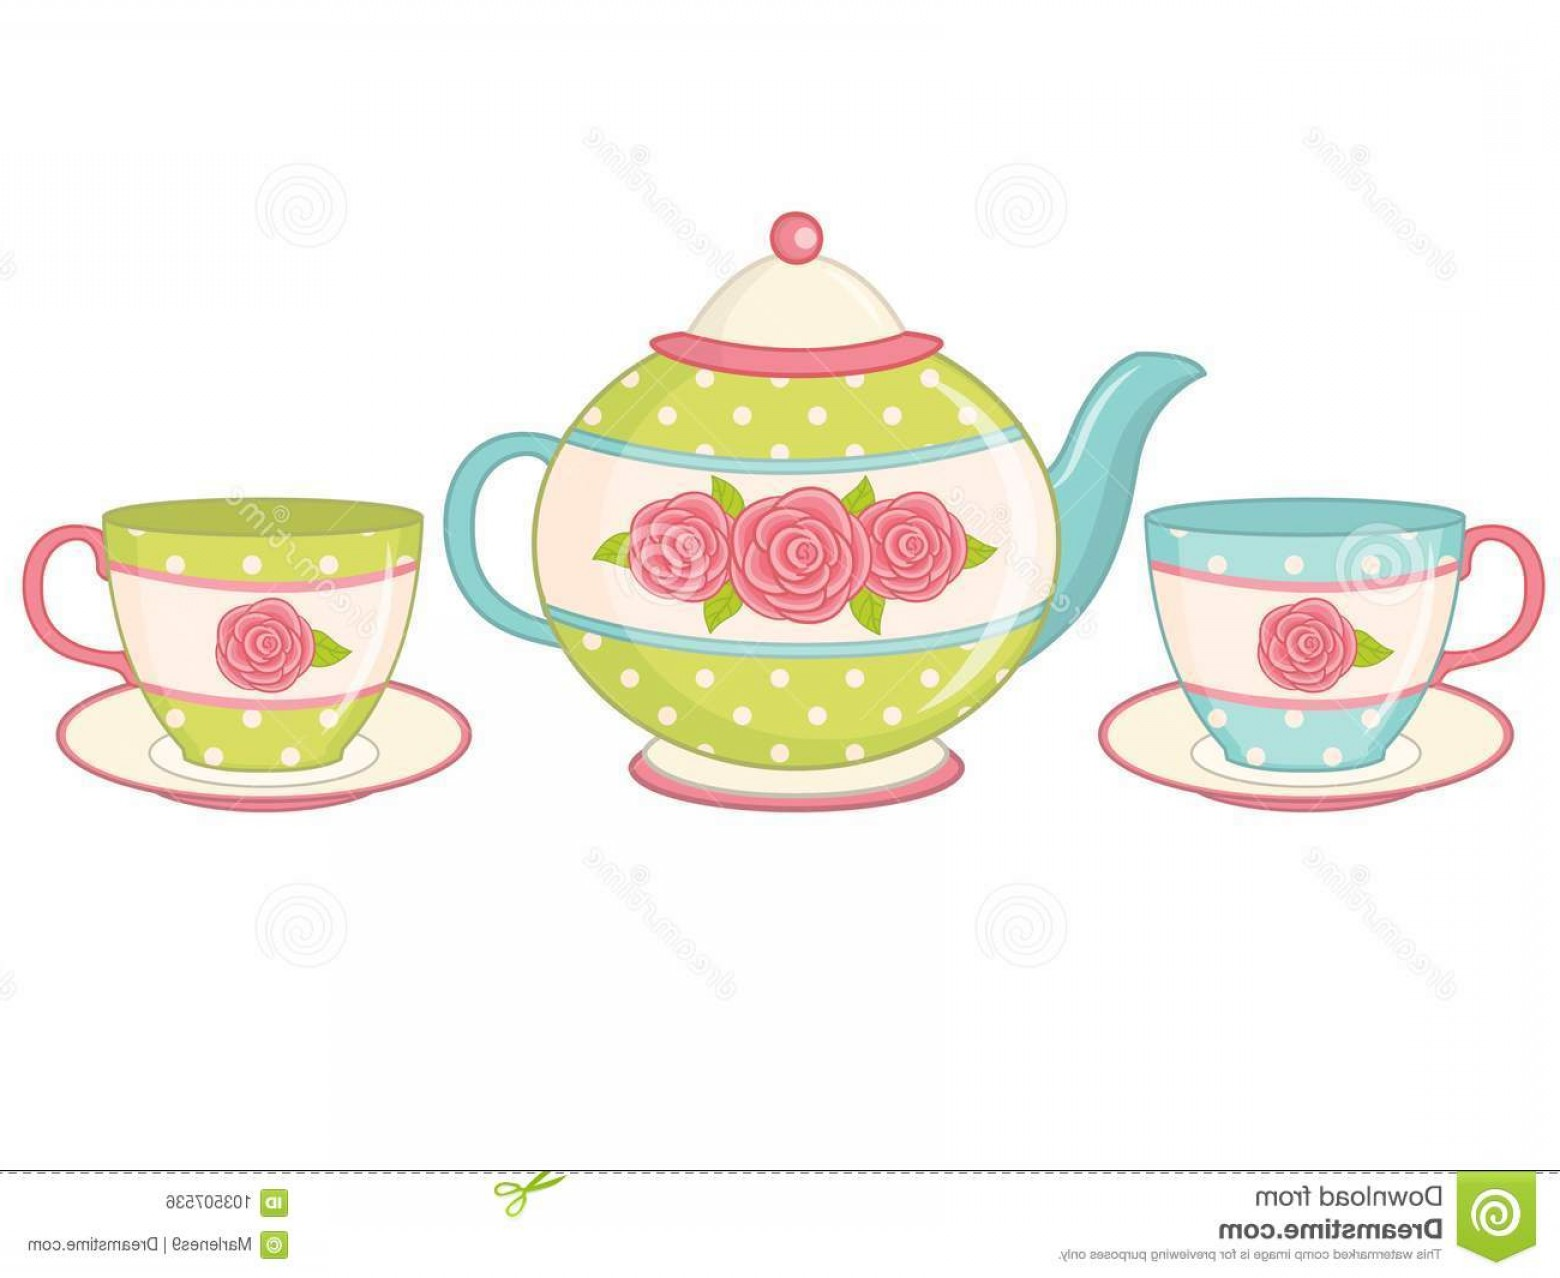 Tea Set Vector: Vector Teapot Teacups Saucers Decorated Polka Dot Pattern Roses Tea Pot Tea Cups Vector Illustration Vector Image